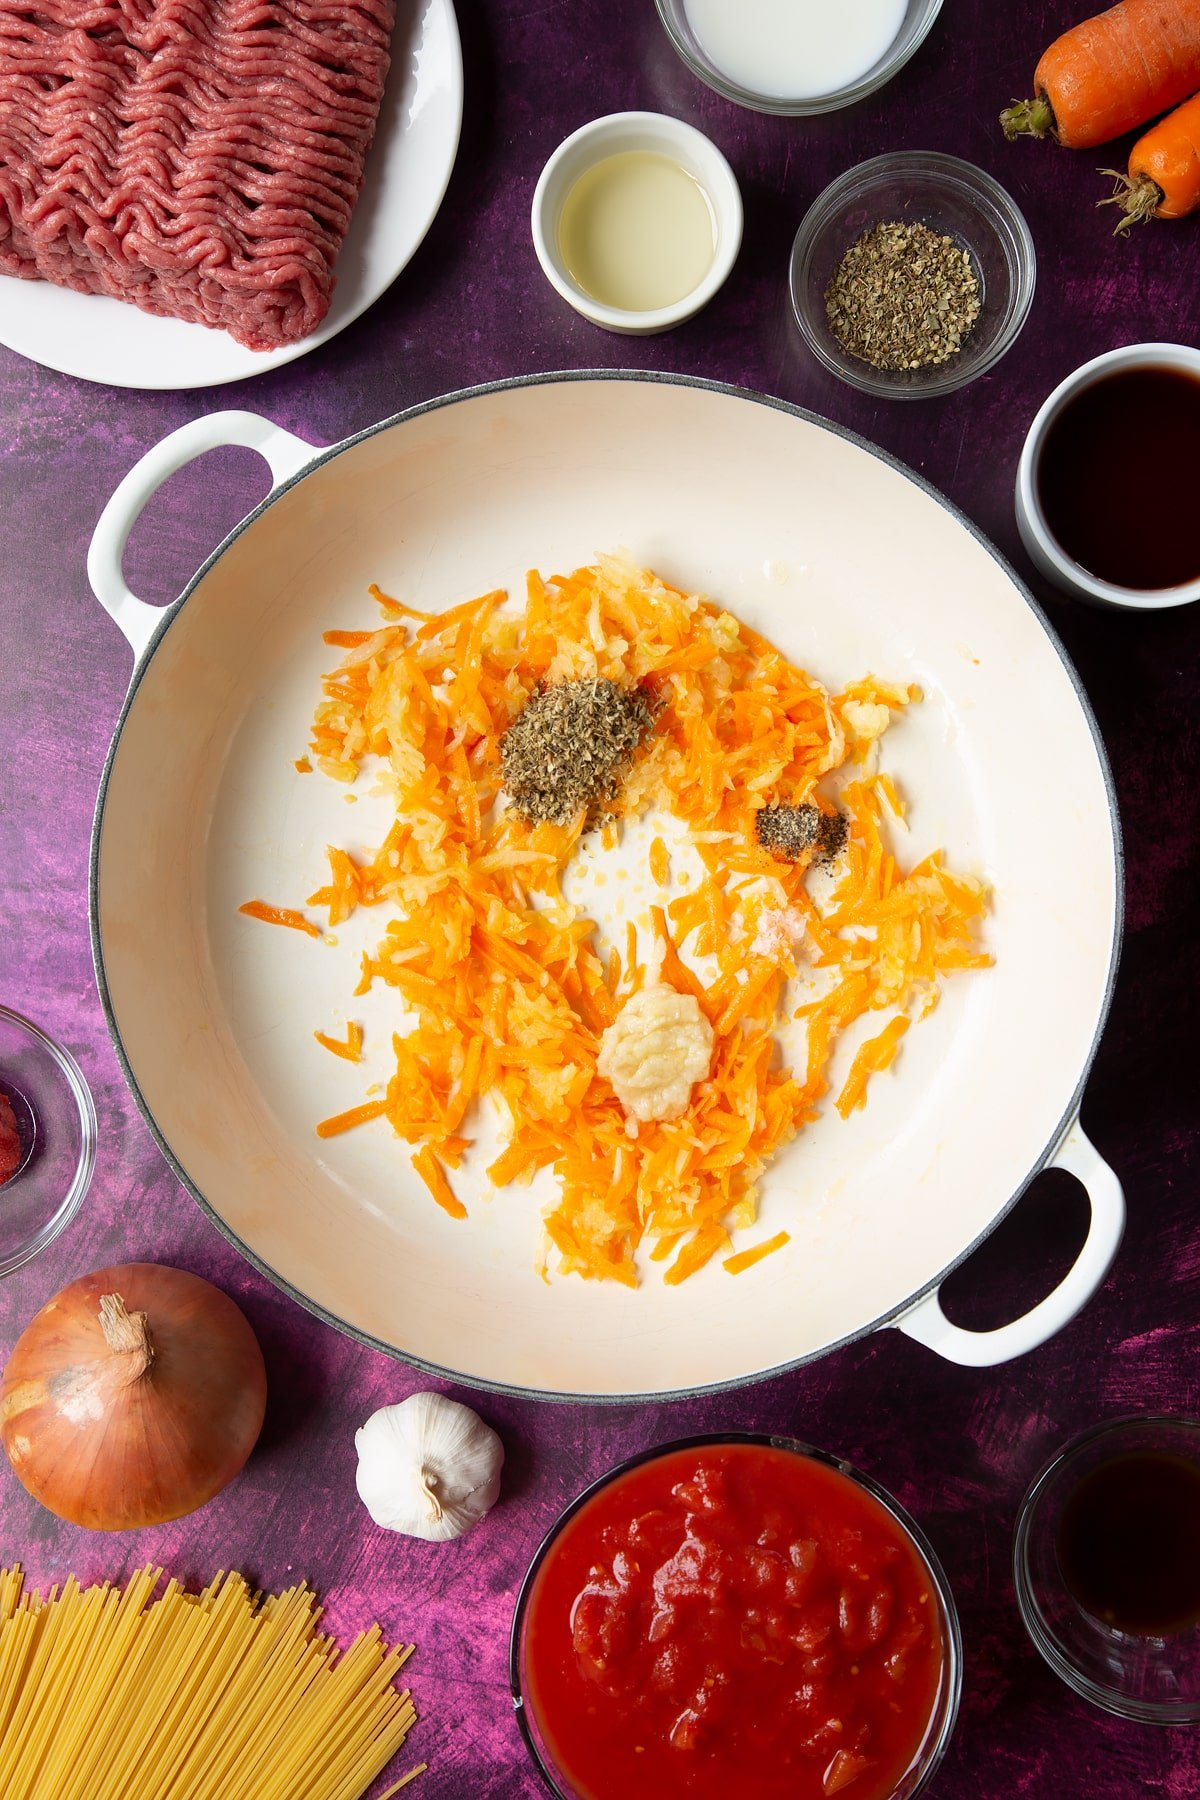 A large frying pan with fried carrot and onion, plus minced garlic and dried oregano. Ingredients to make spaghetti bolognese Gordon Ramsay style surround the pan.